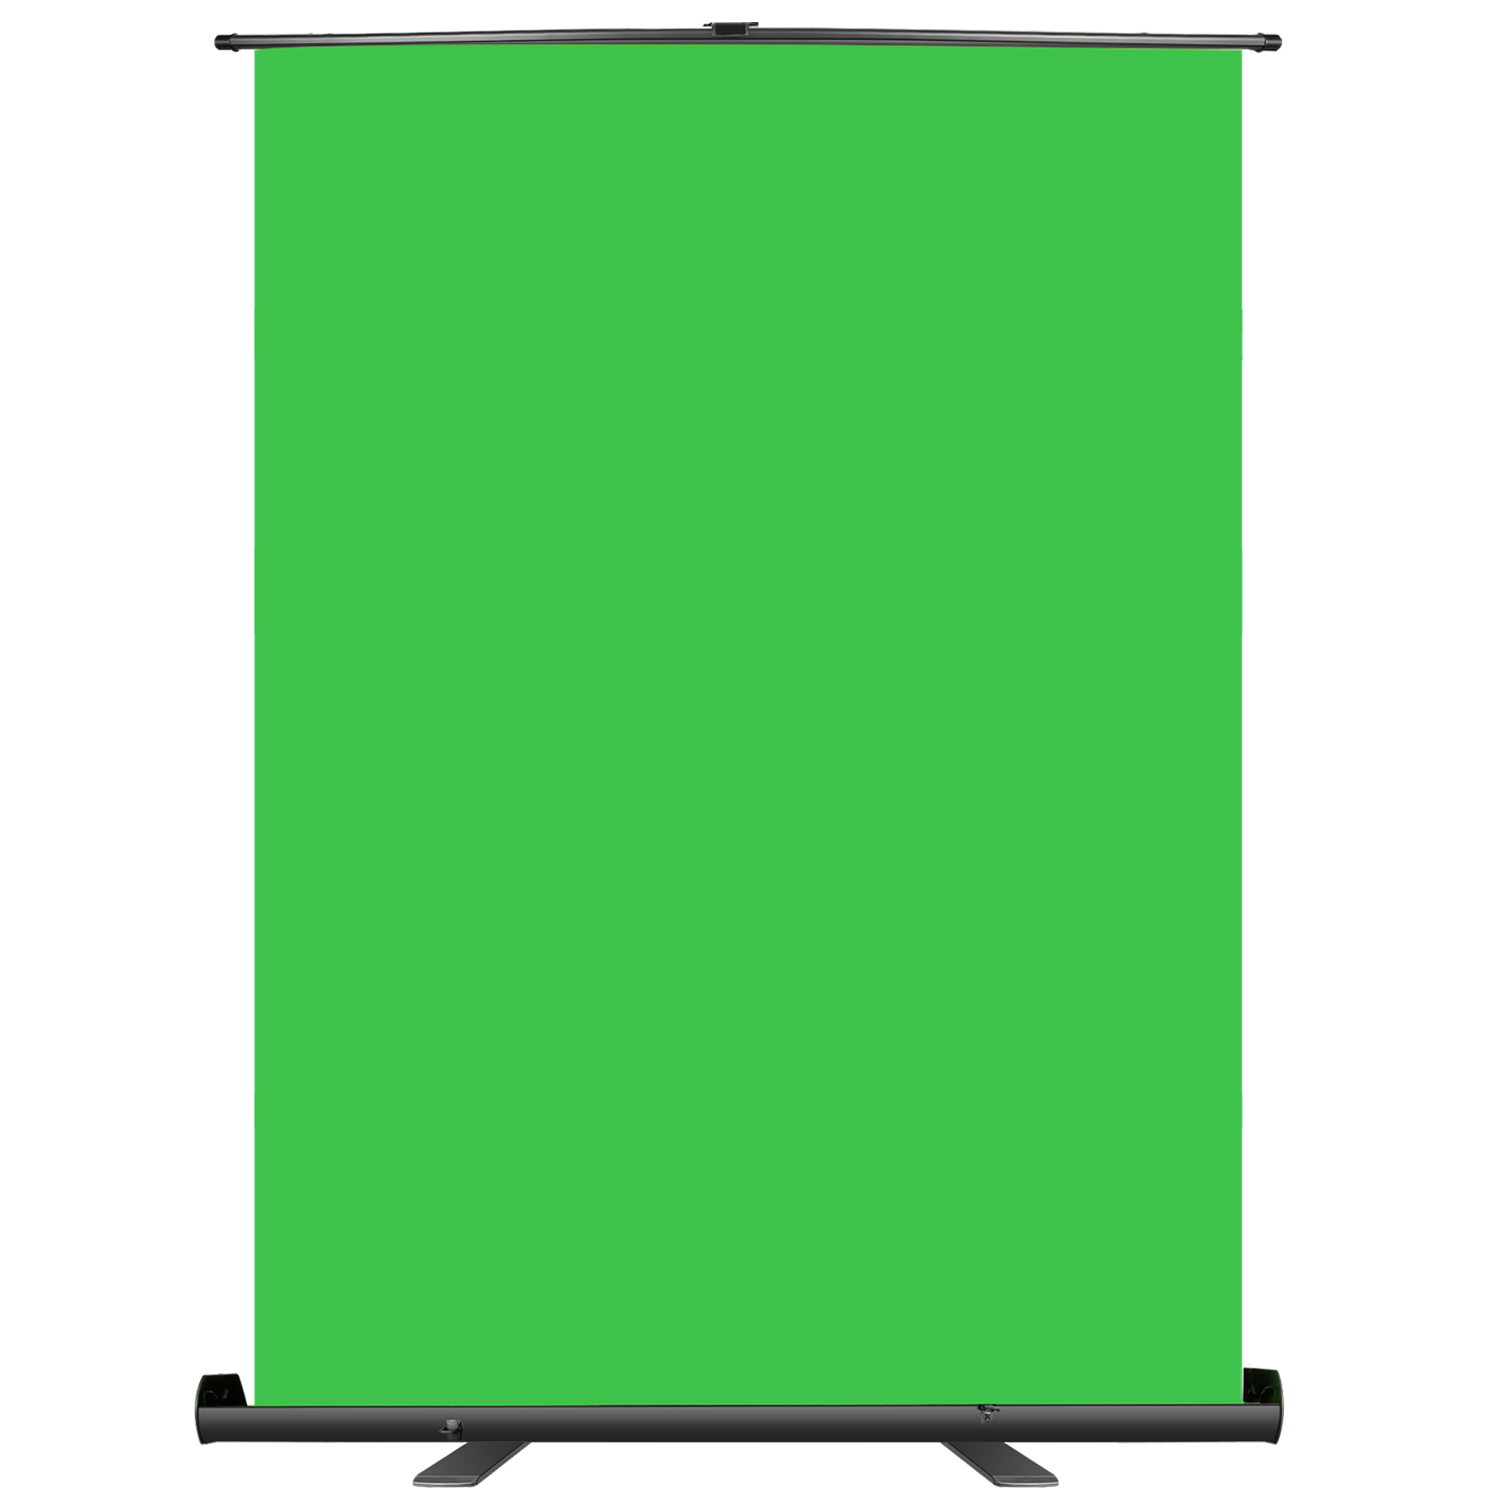 GREEN) Neewer Photo Studio 100/% Pure Muslin Collapsible Backdrop Background for Photography,Video and televison 3 x 6M// 9.8 x19.7ft